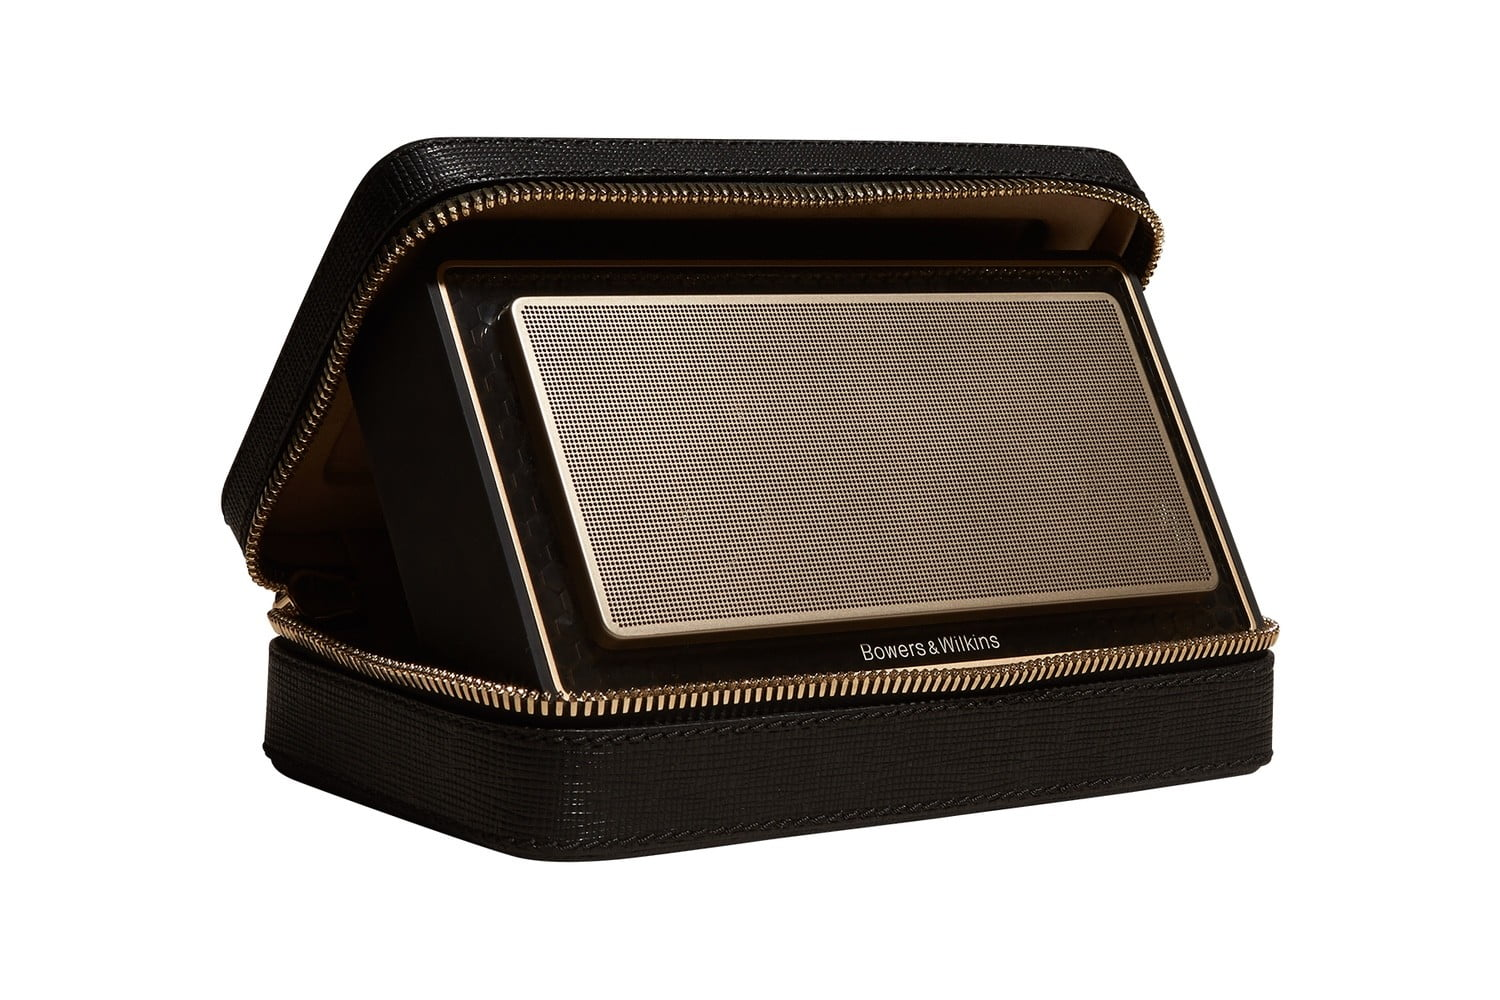 bowers wilkins burberry t7 bluetooth speaker and gold edition 6